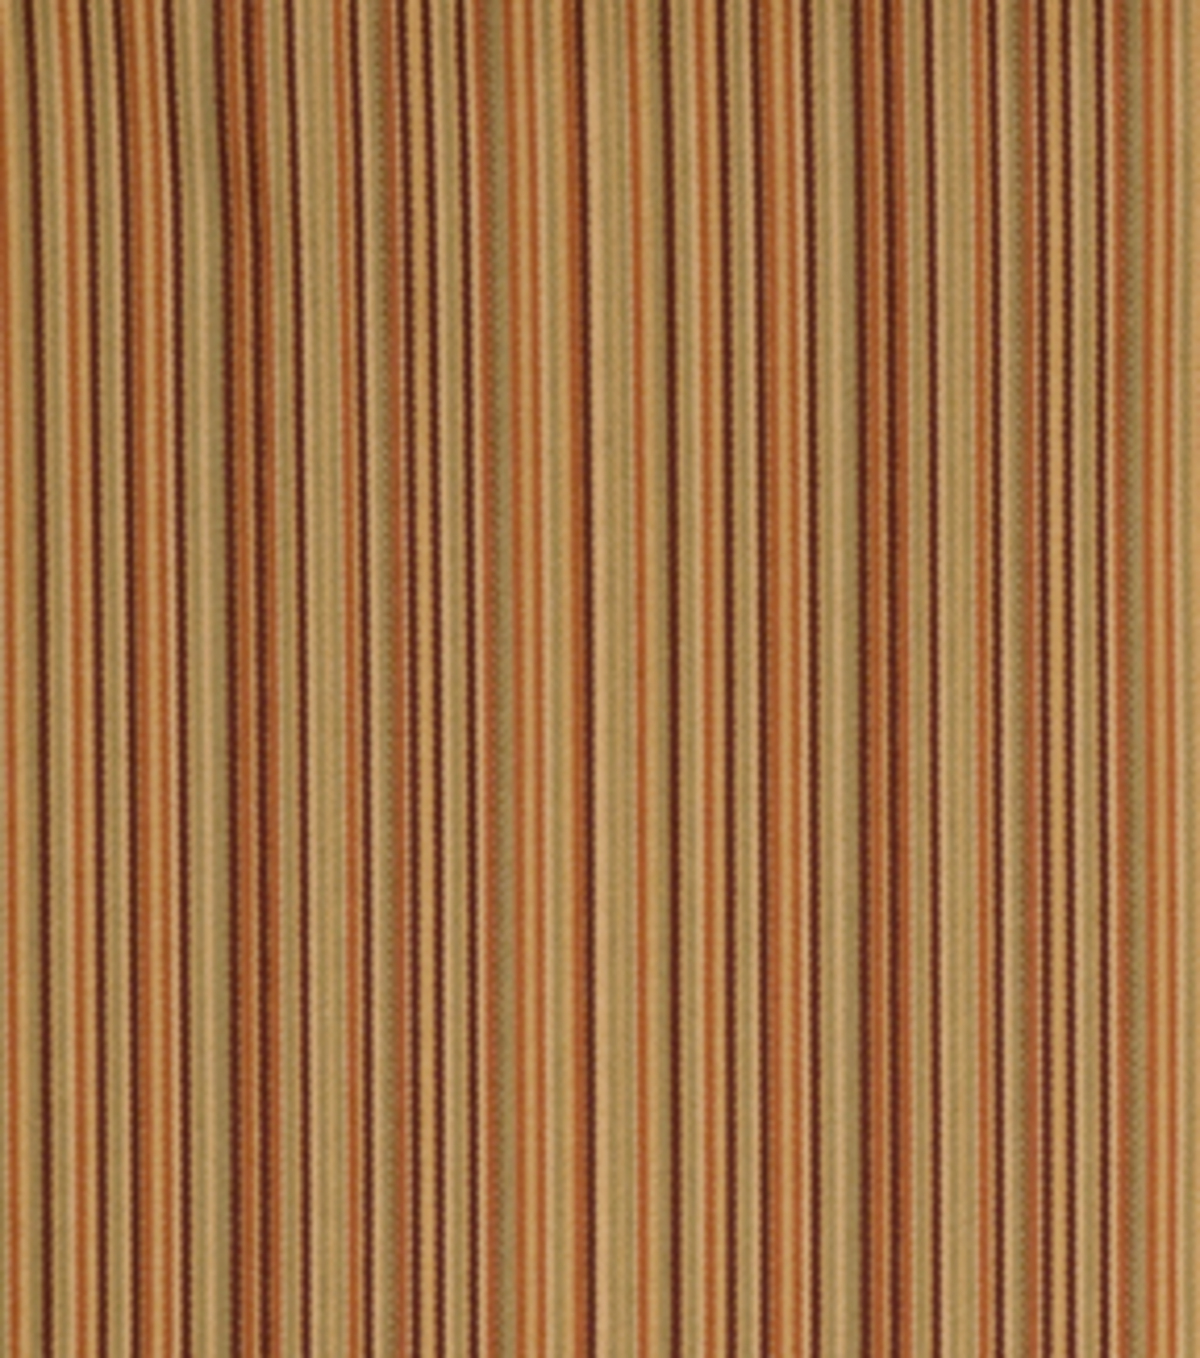 Home Decor 8\u0022x8\u0022 Fabric Swatch-Upholstery Fabric Eaton Square Ivy Autumn